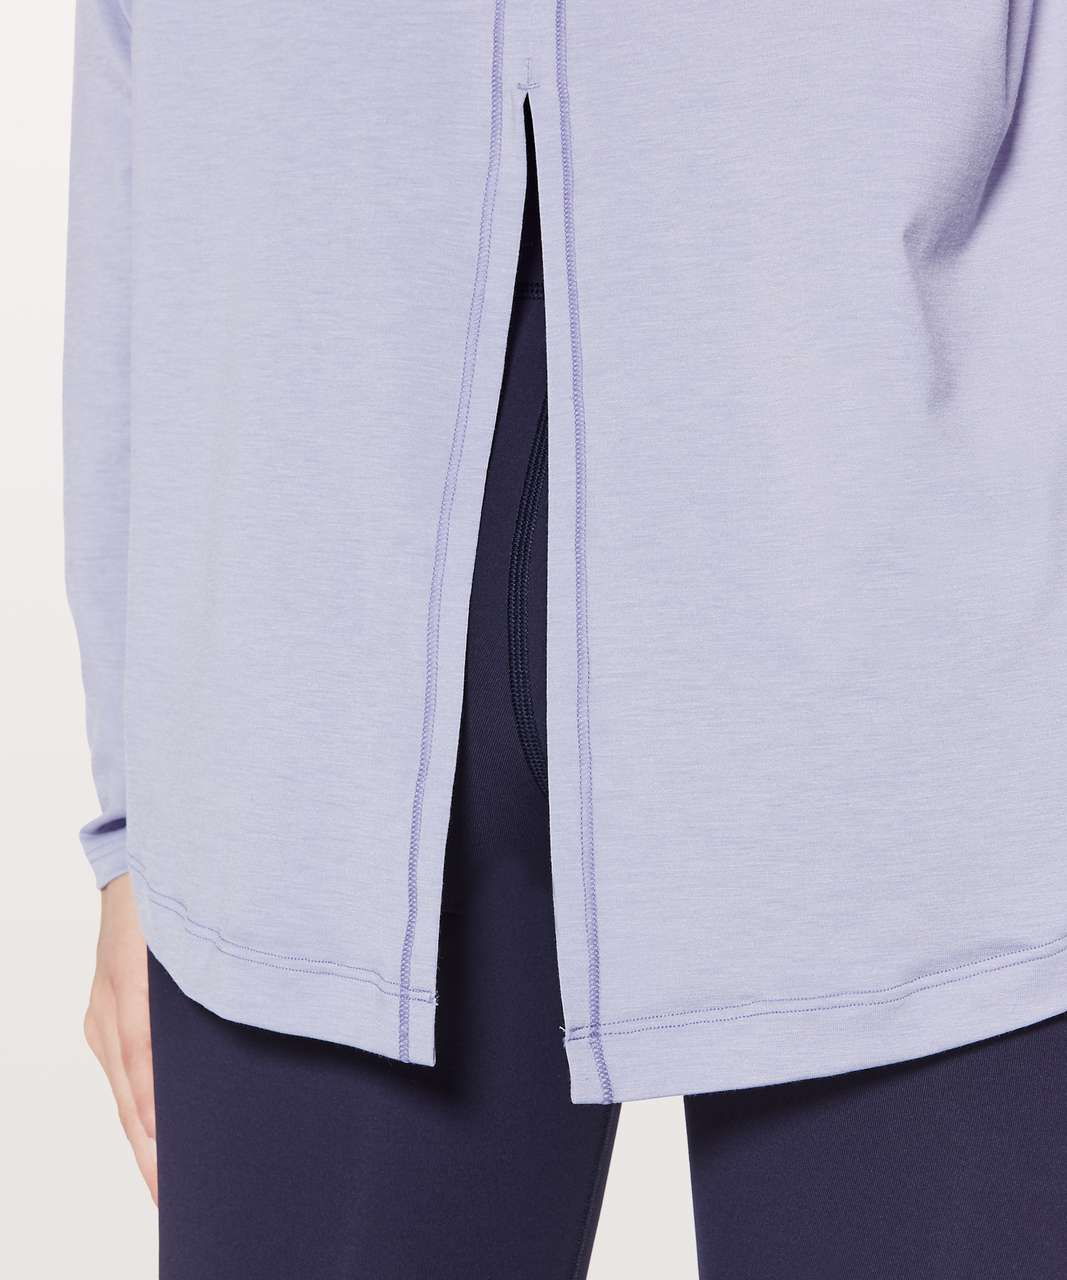 Lululemon See You In Savasana Long Sleeve - Heathered Misty Moon